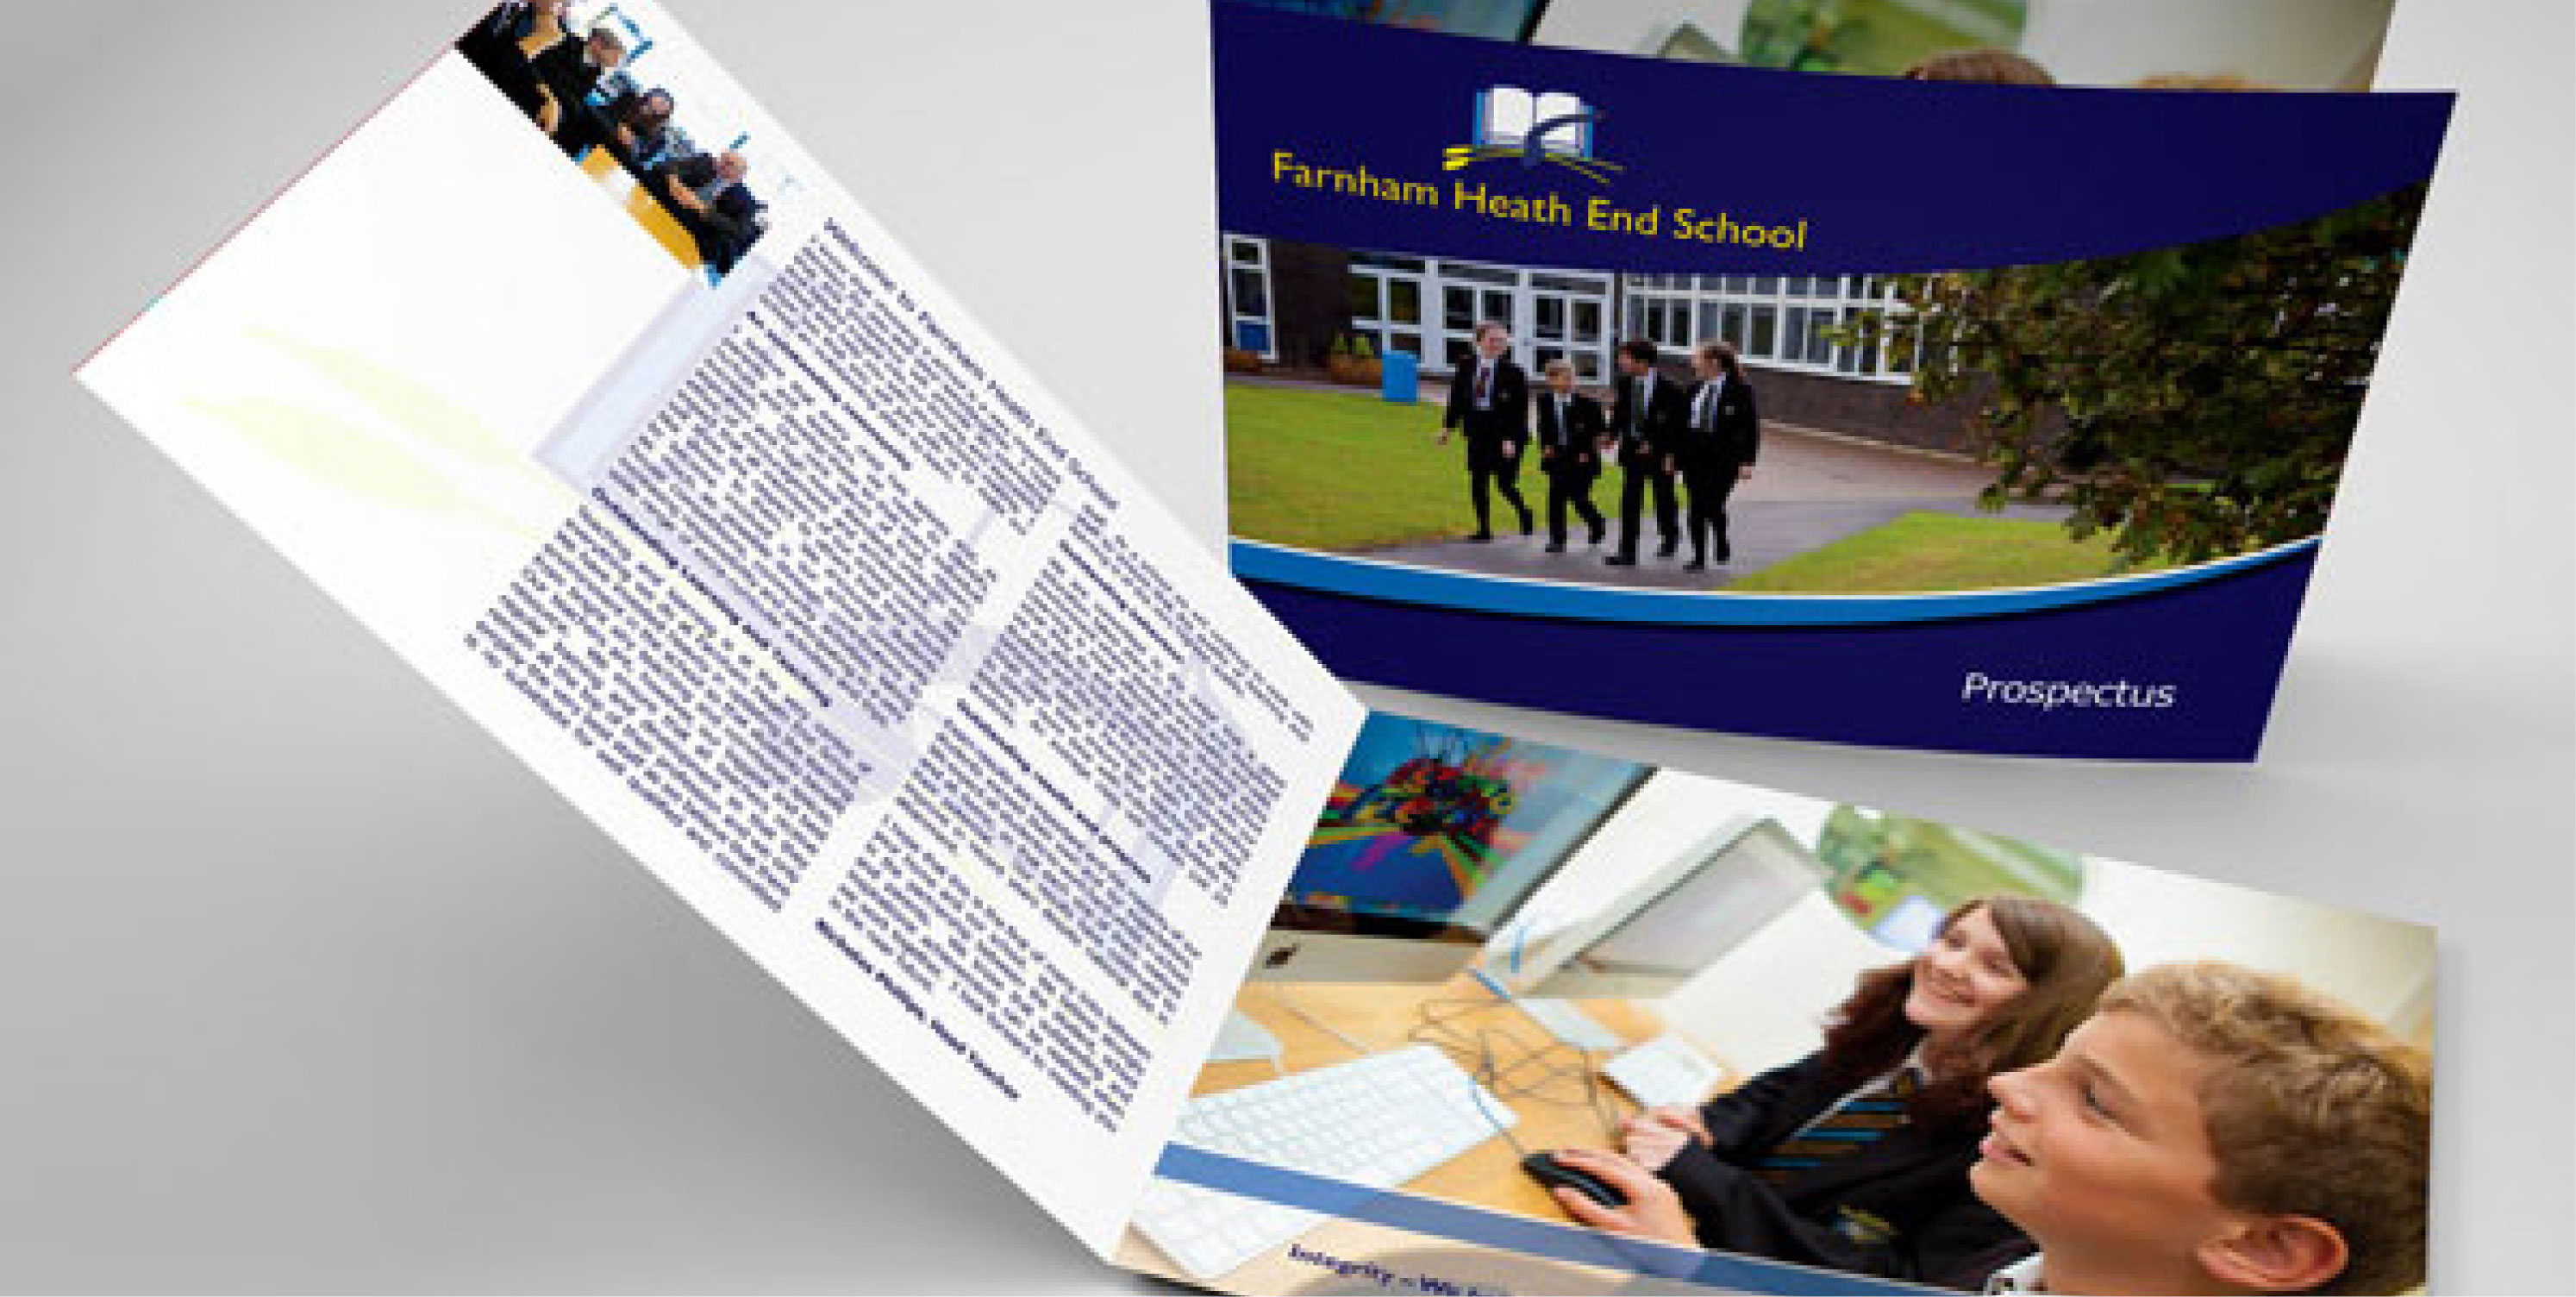 farnham heath end school prospectus design